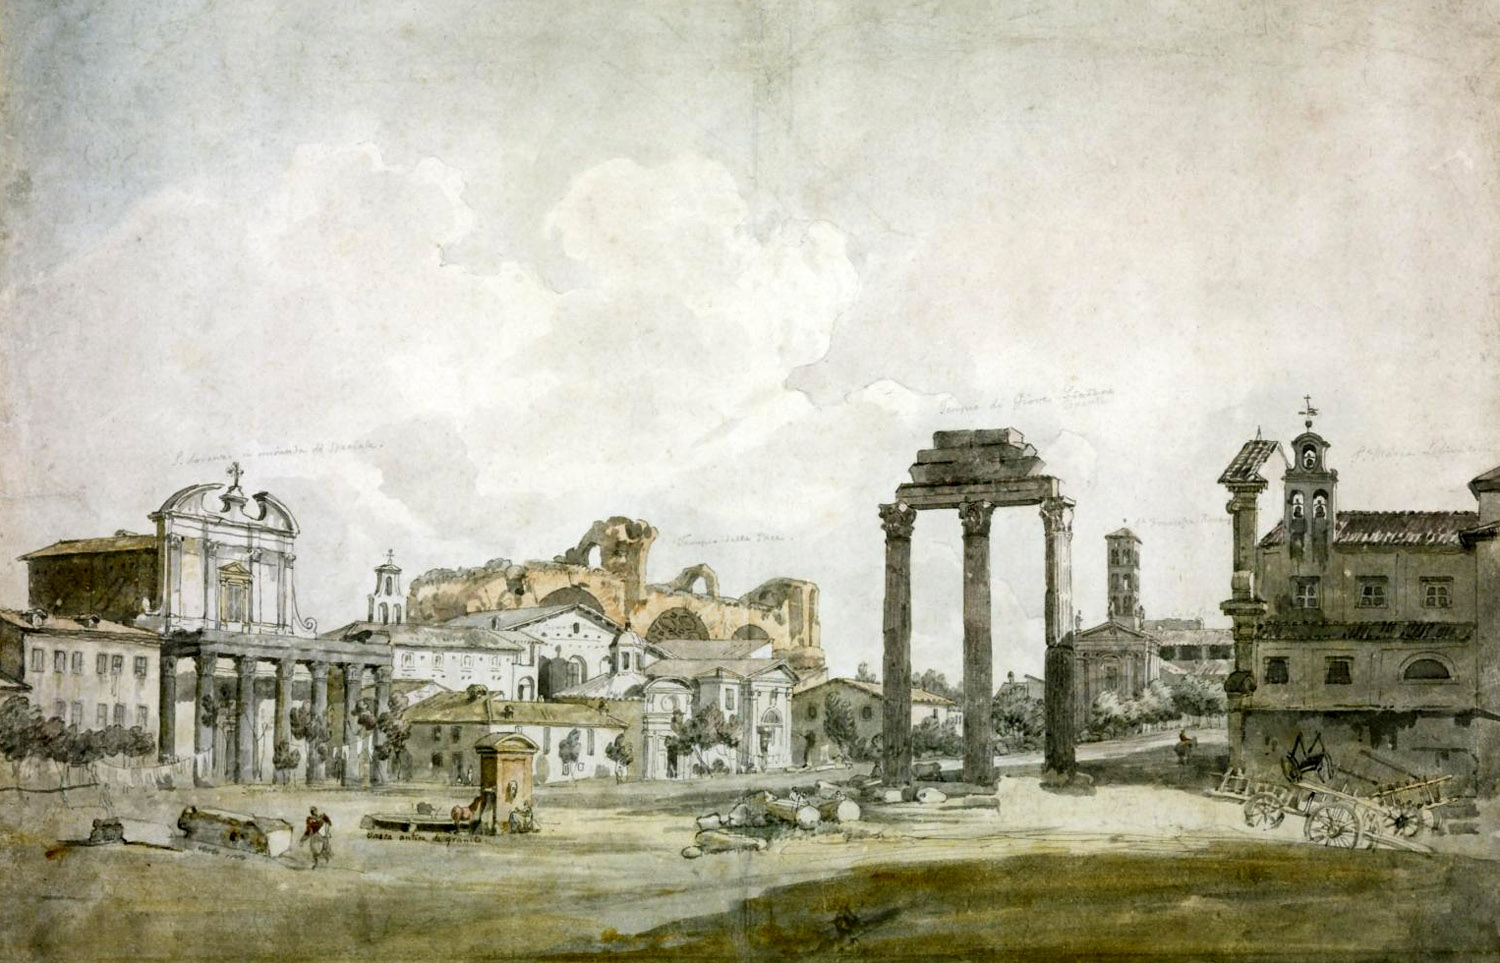 William Pars, Le Forum